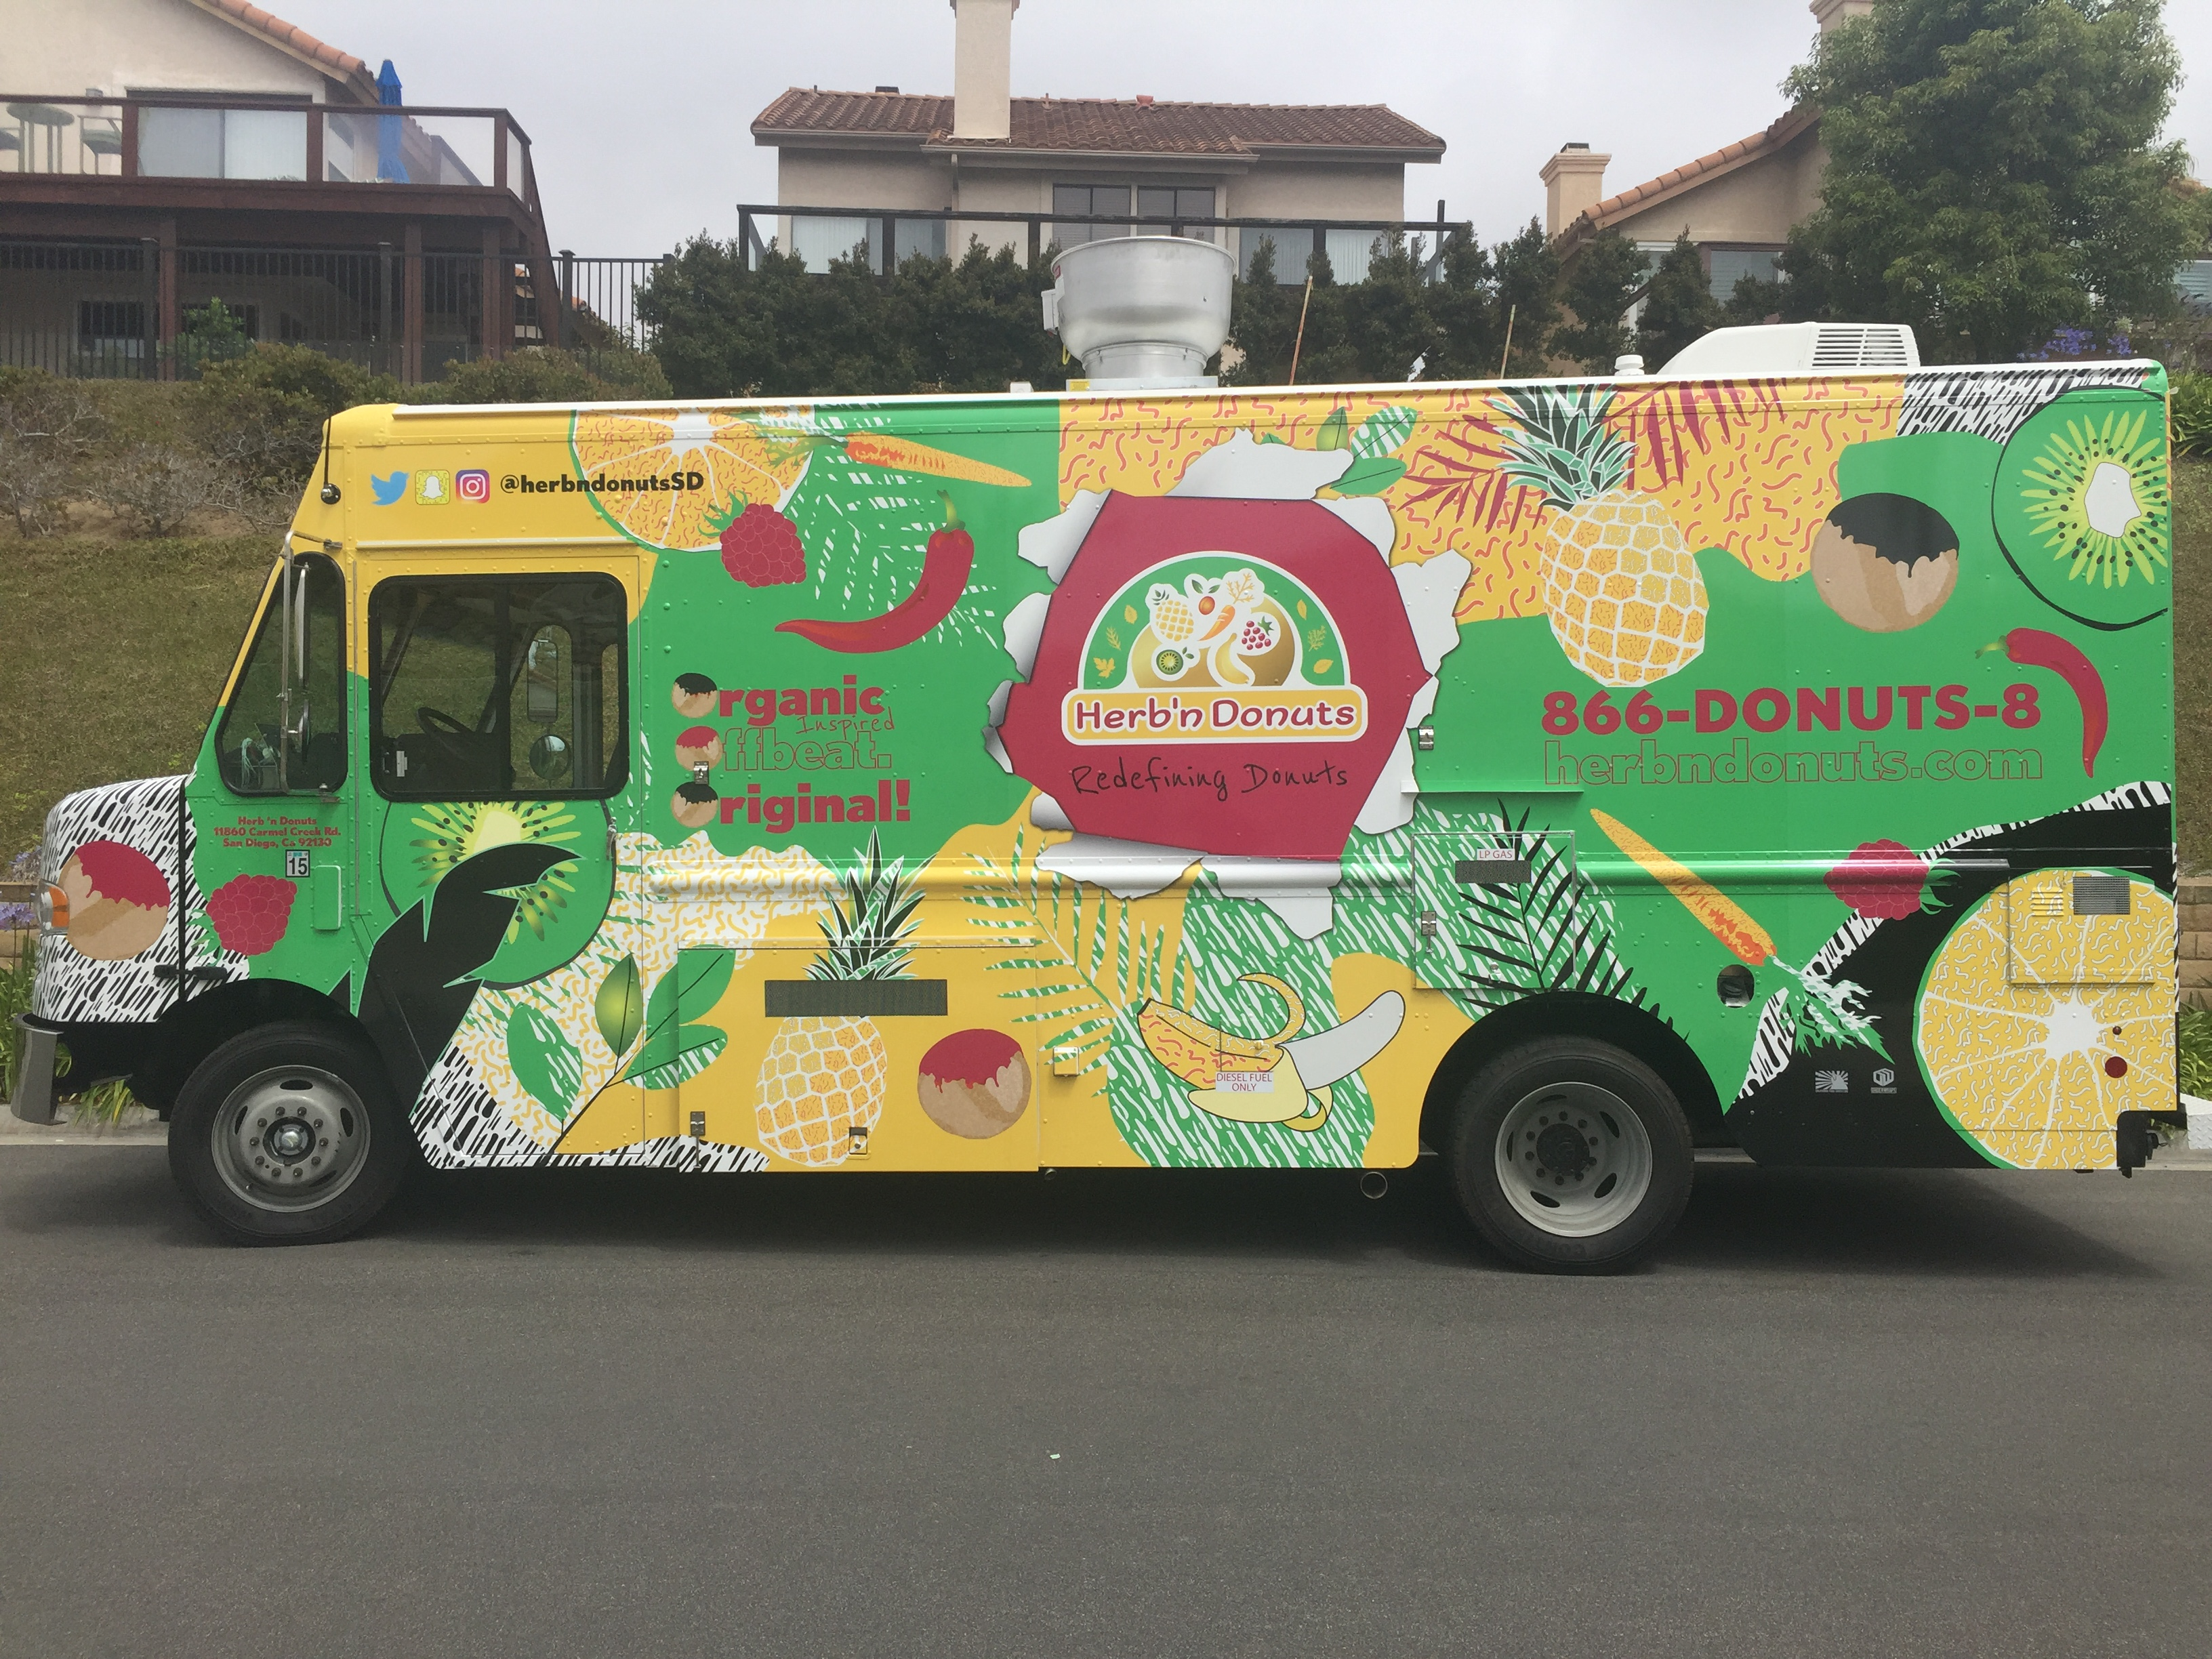 New Food Truck Rolls Out Sweet & Savory Doughnut Sandwiches